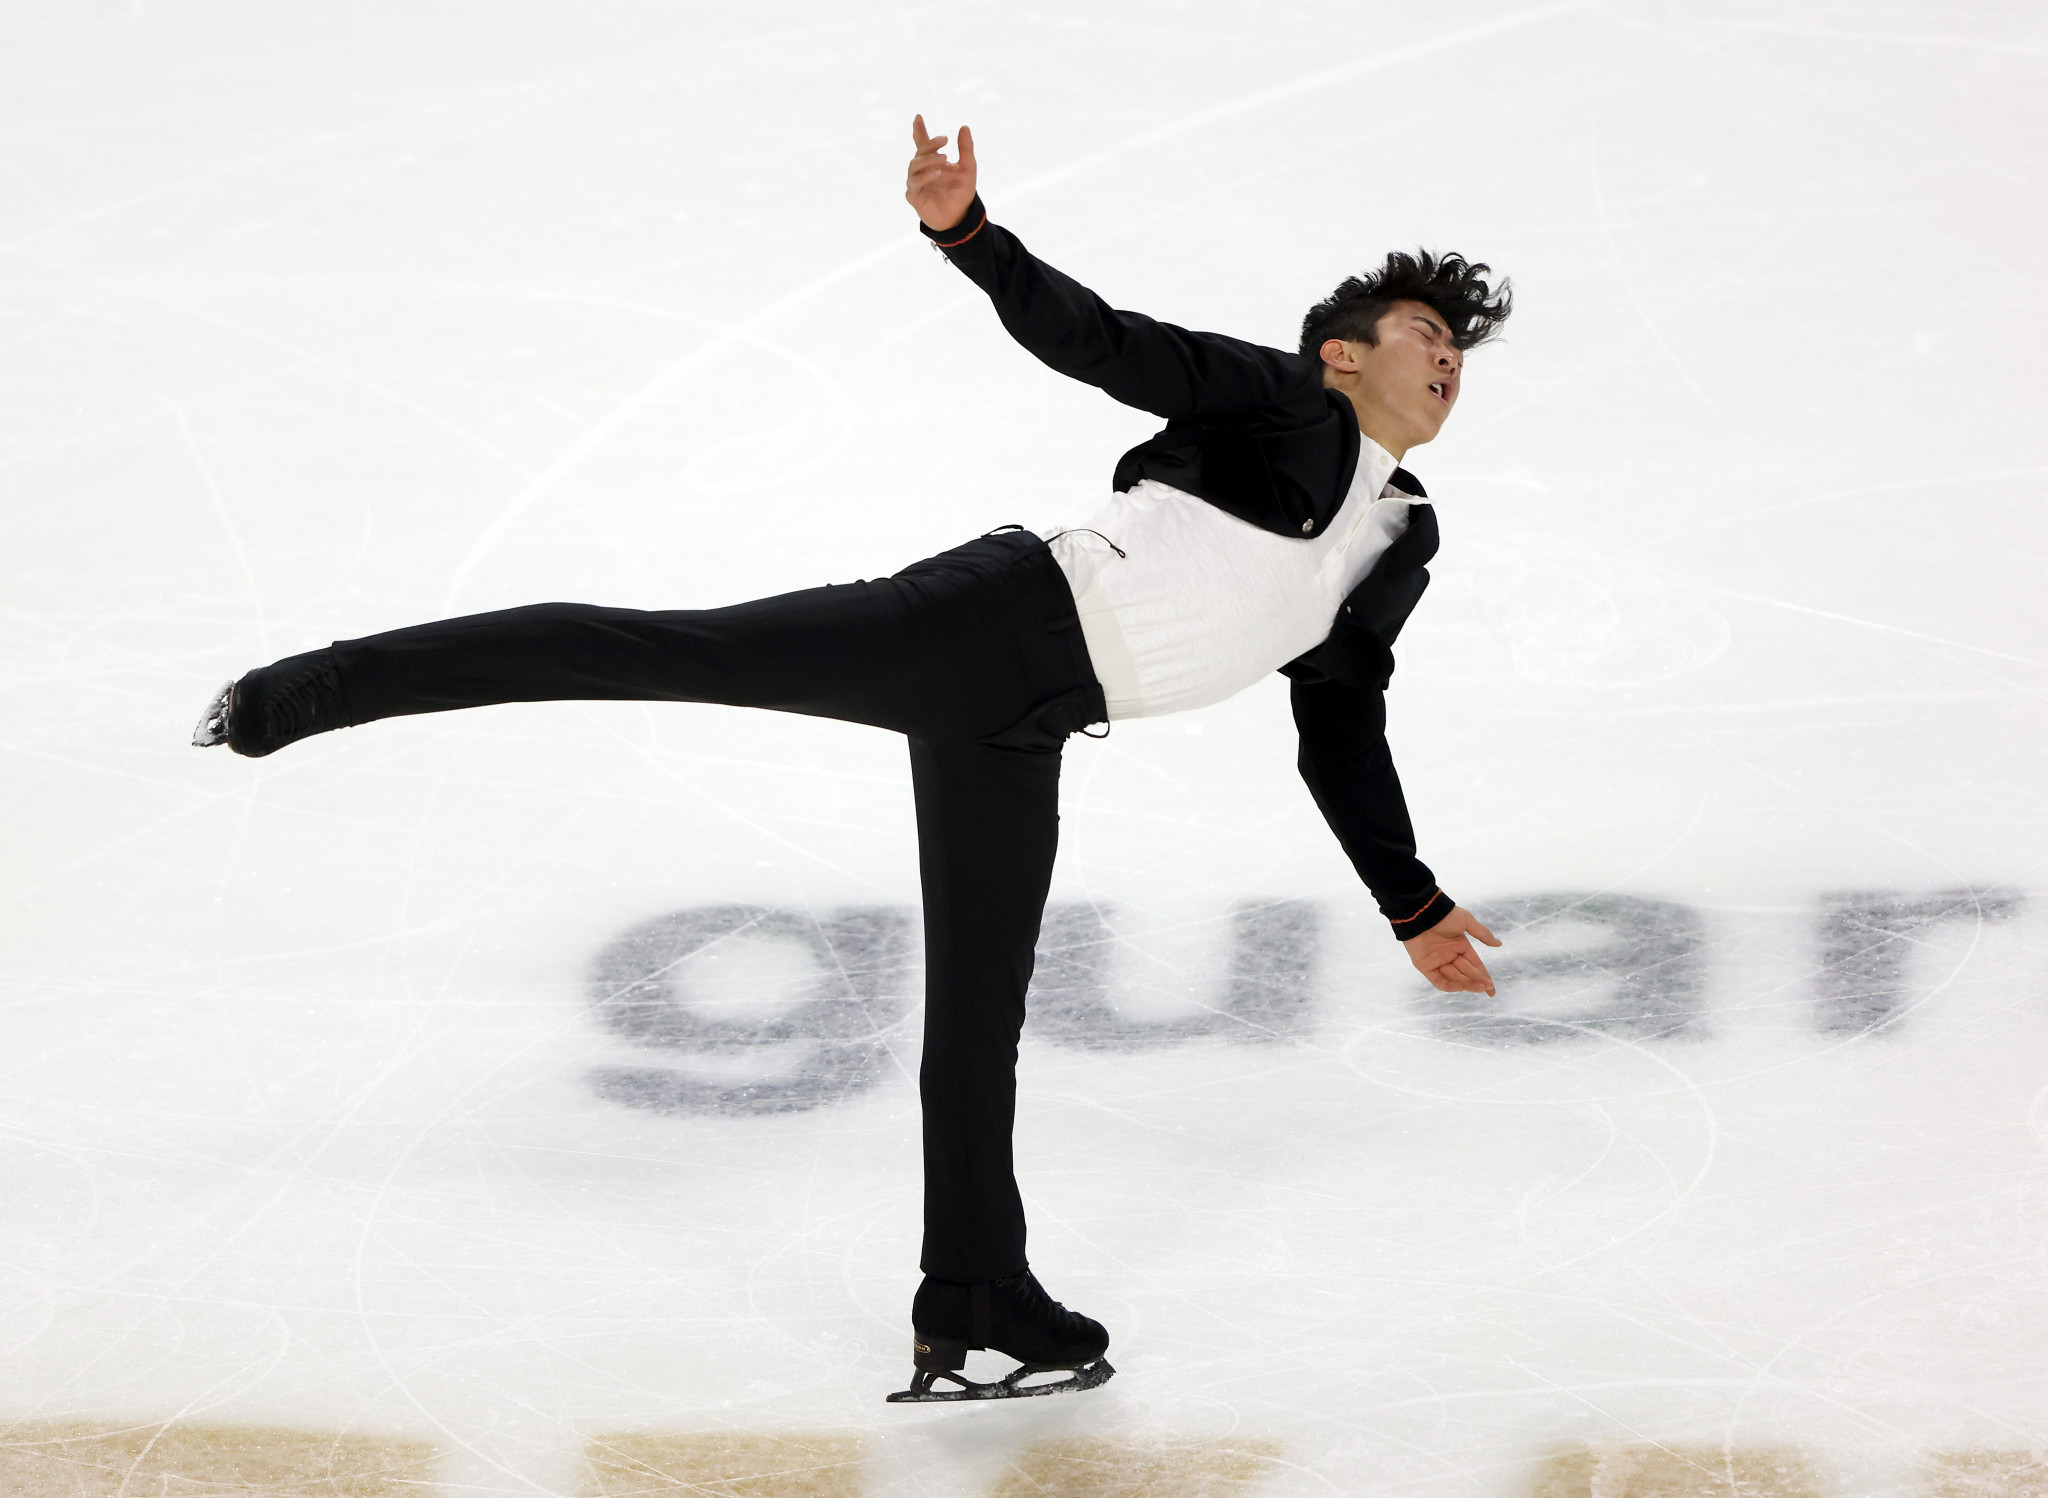 Nathan Chen returned to action by winning Skate America last month ©Getty Images